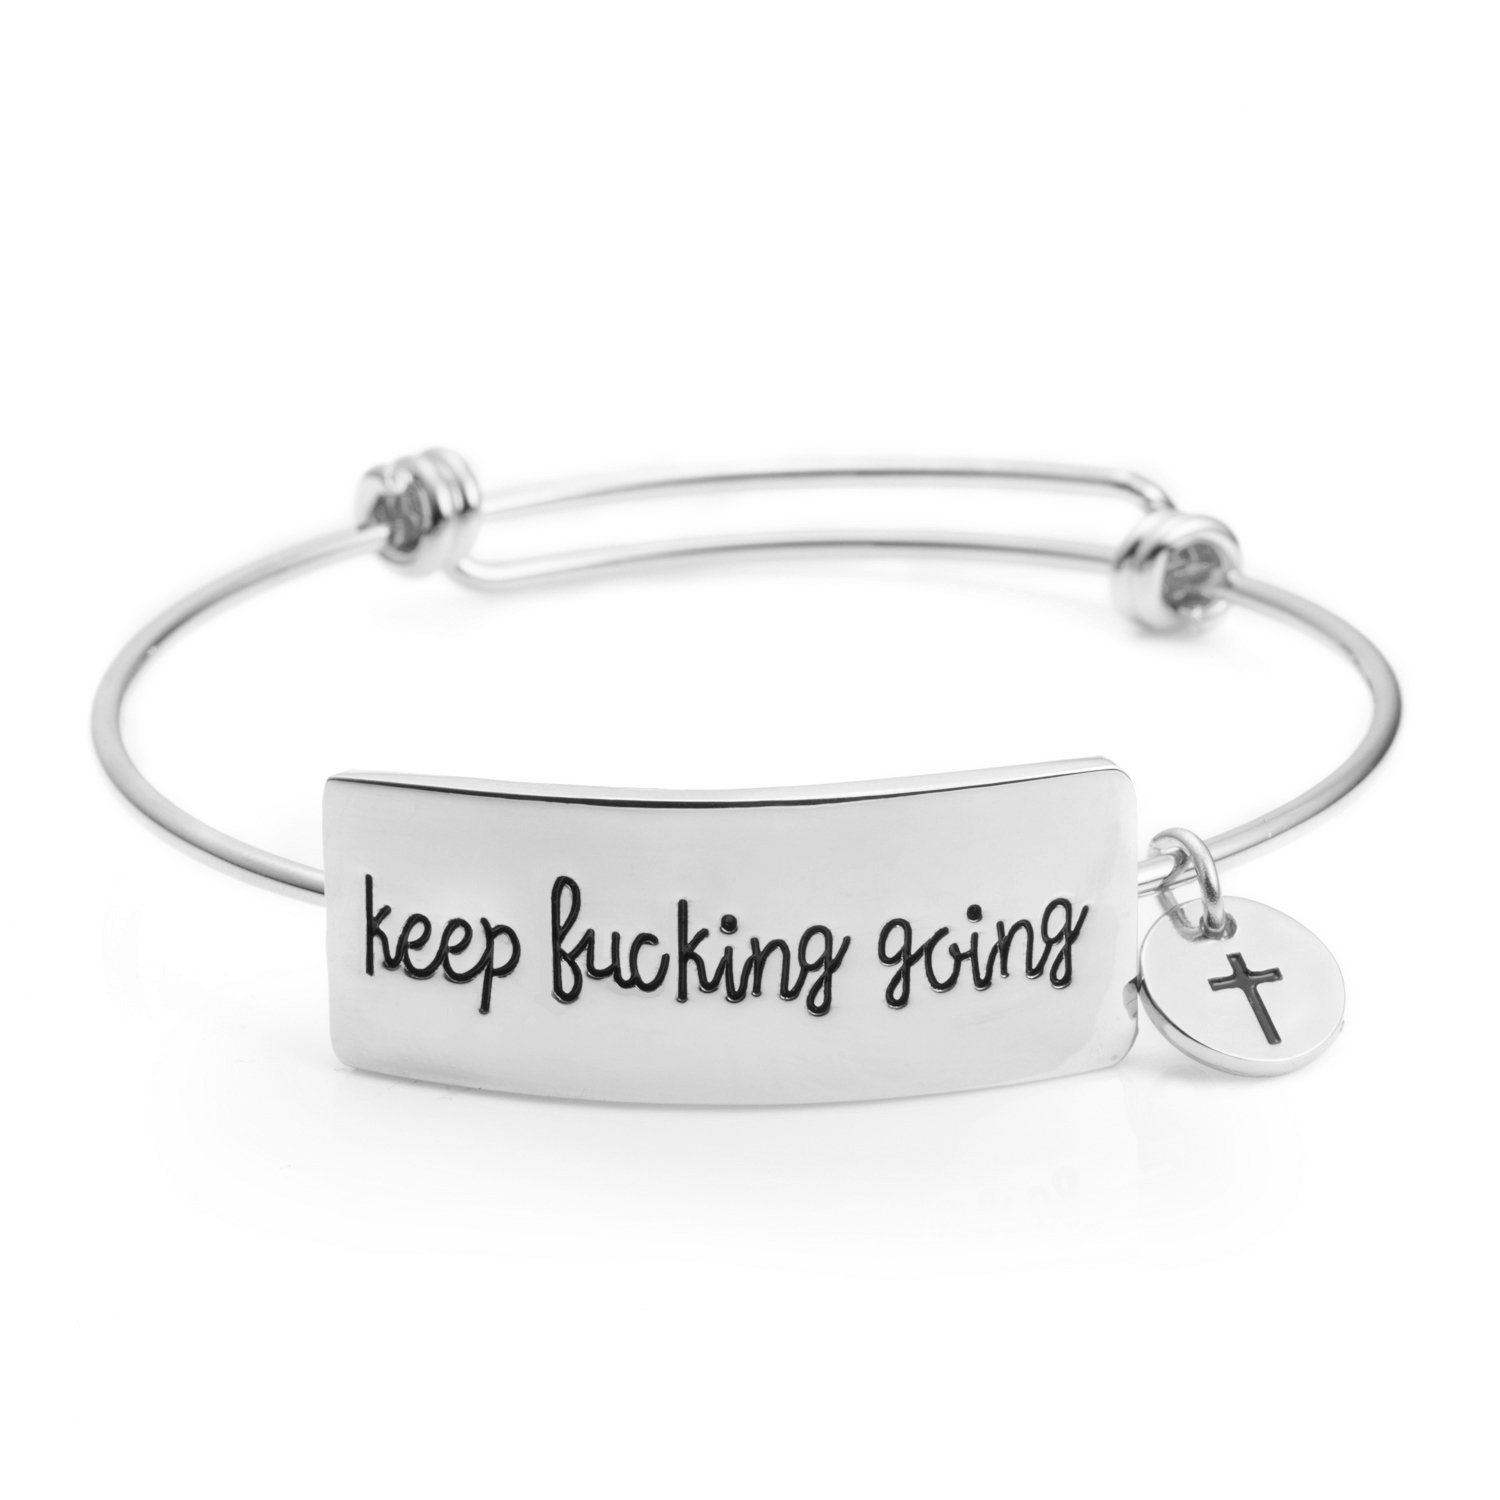 Yiyangjewelry Gifts for Her Inspirational Expandable Bangle Bracelet Engraved Keep Fucking Going(Silver)